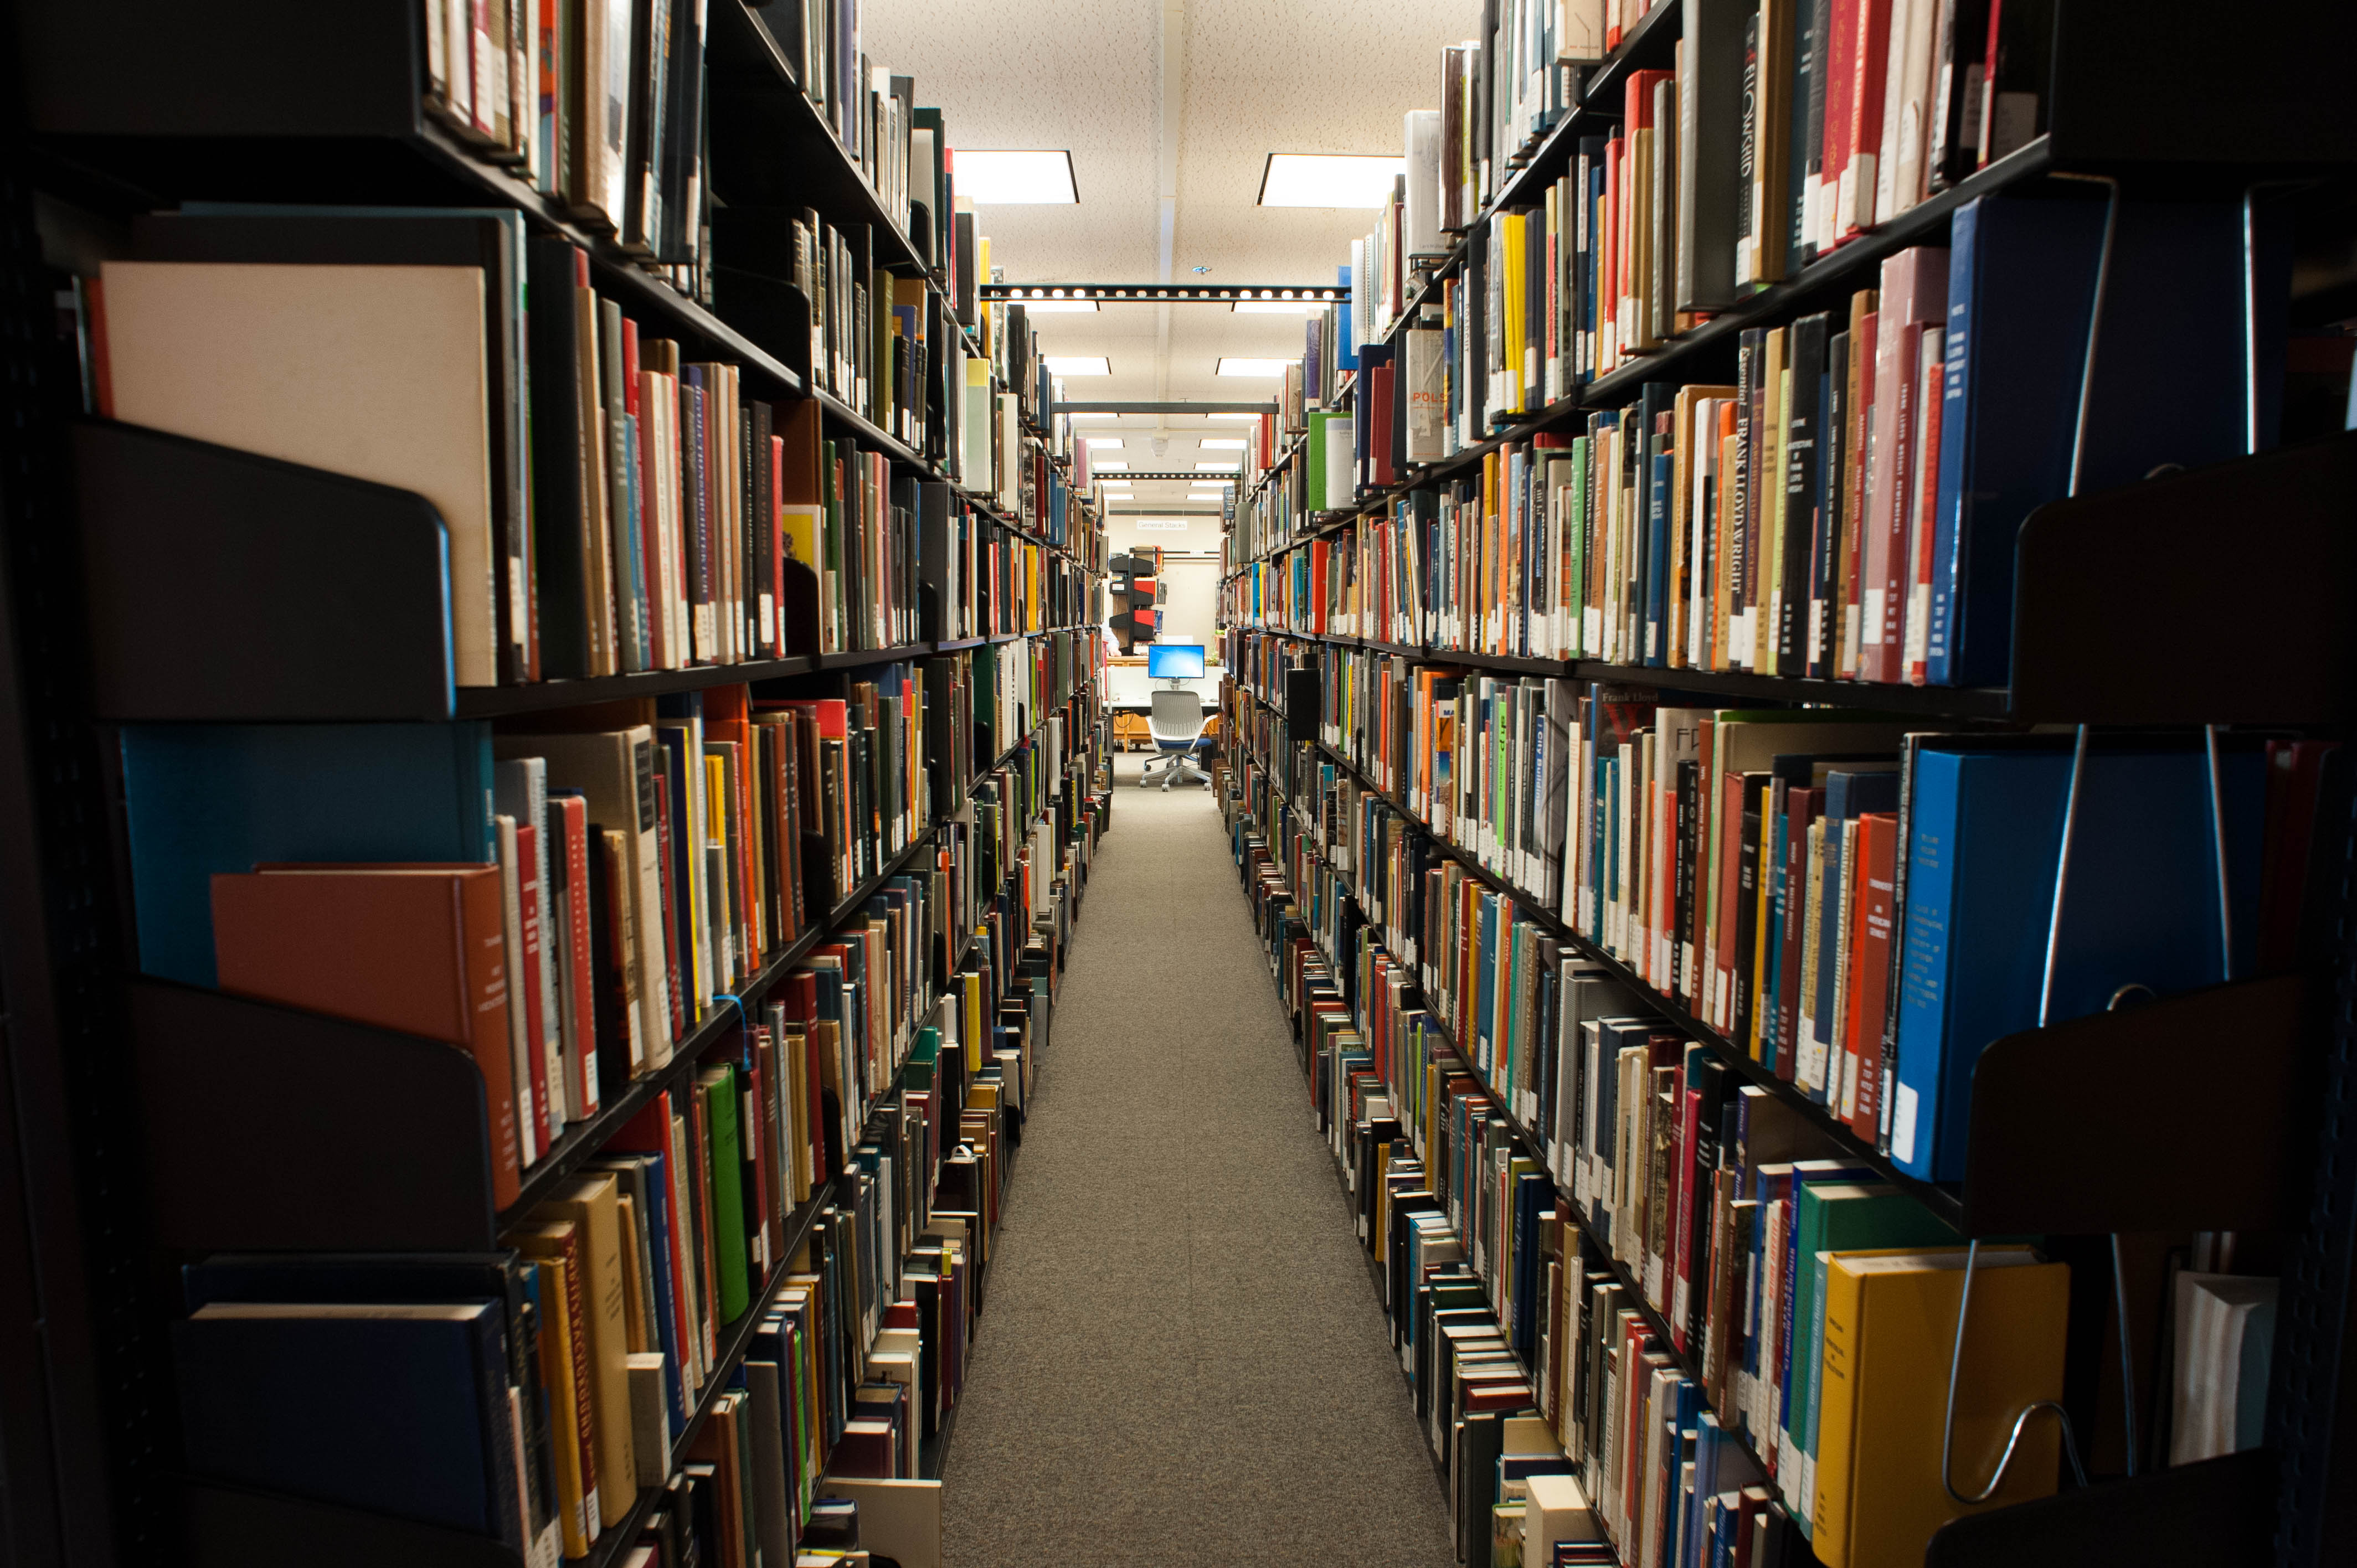 Rows and rows of multicolored books